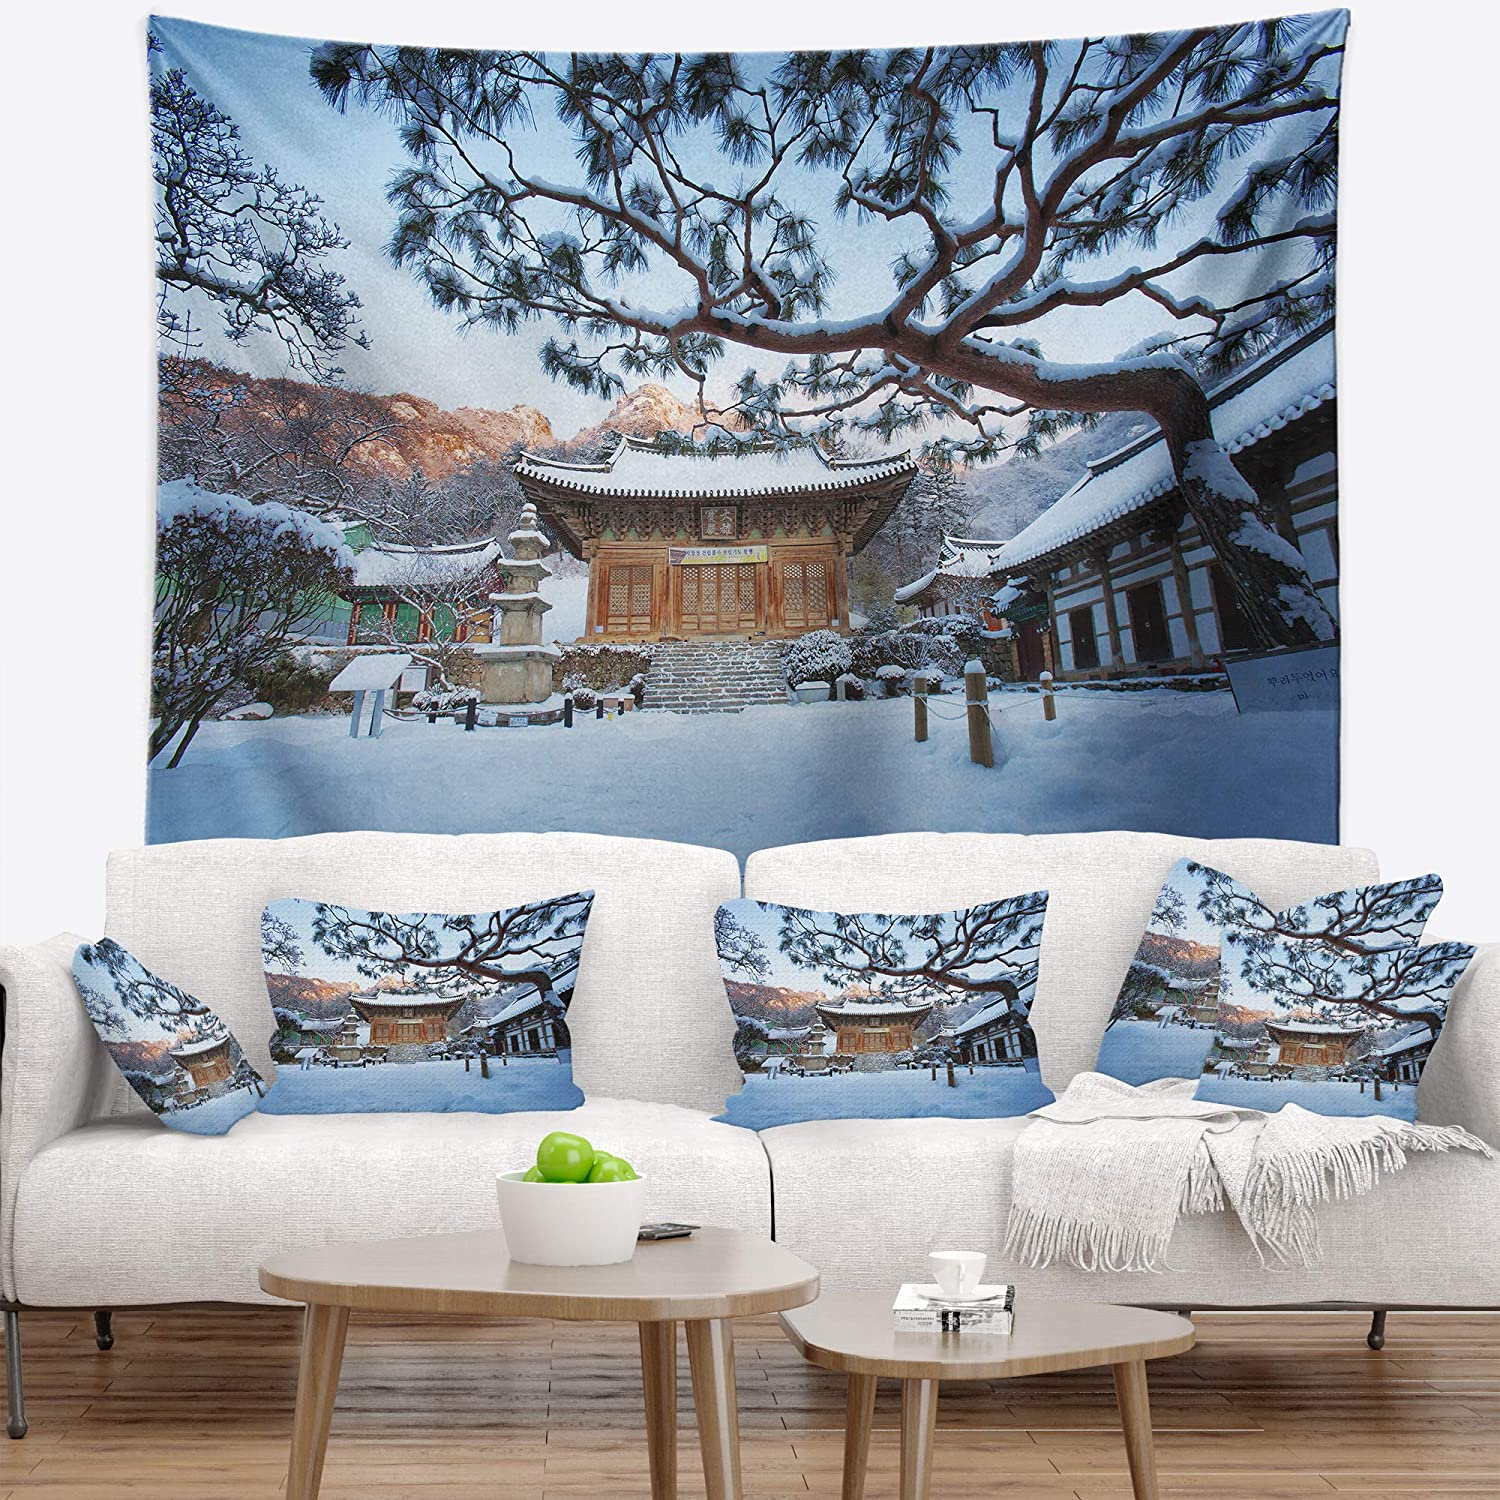 60 x 50 Designart TAP15287-60-50  Naesosa Temple in South Korea Landscape Blanket D/écor Art for Home and Office Wall Tapestry Large